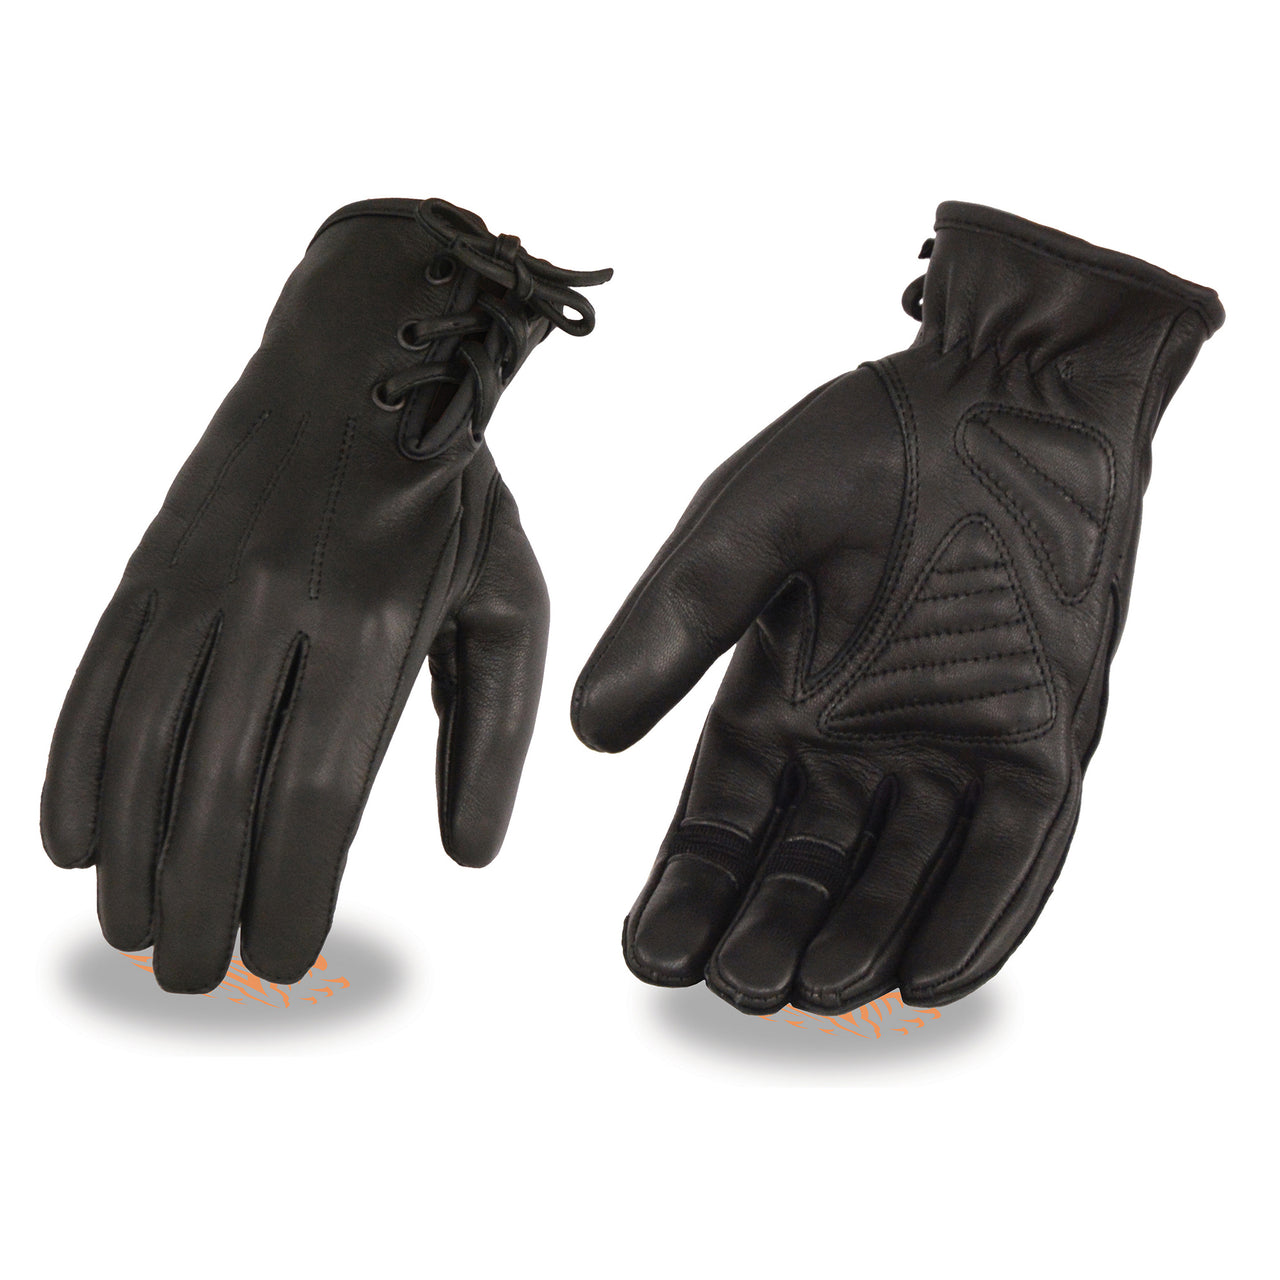 Ladies Deerskin Leather Riding Glove w/ Gel Pam & Laced Wrist - HighwayLeather